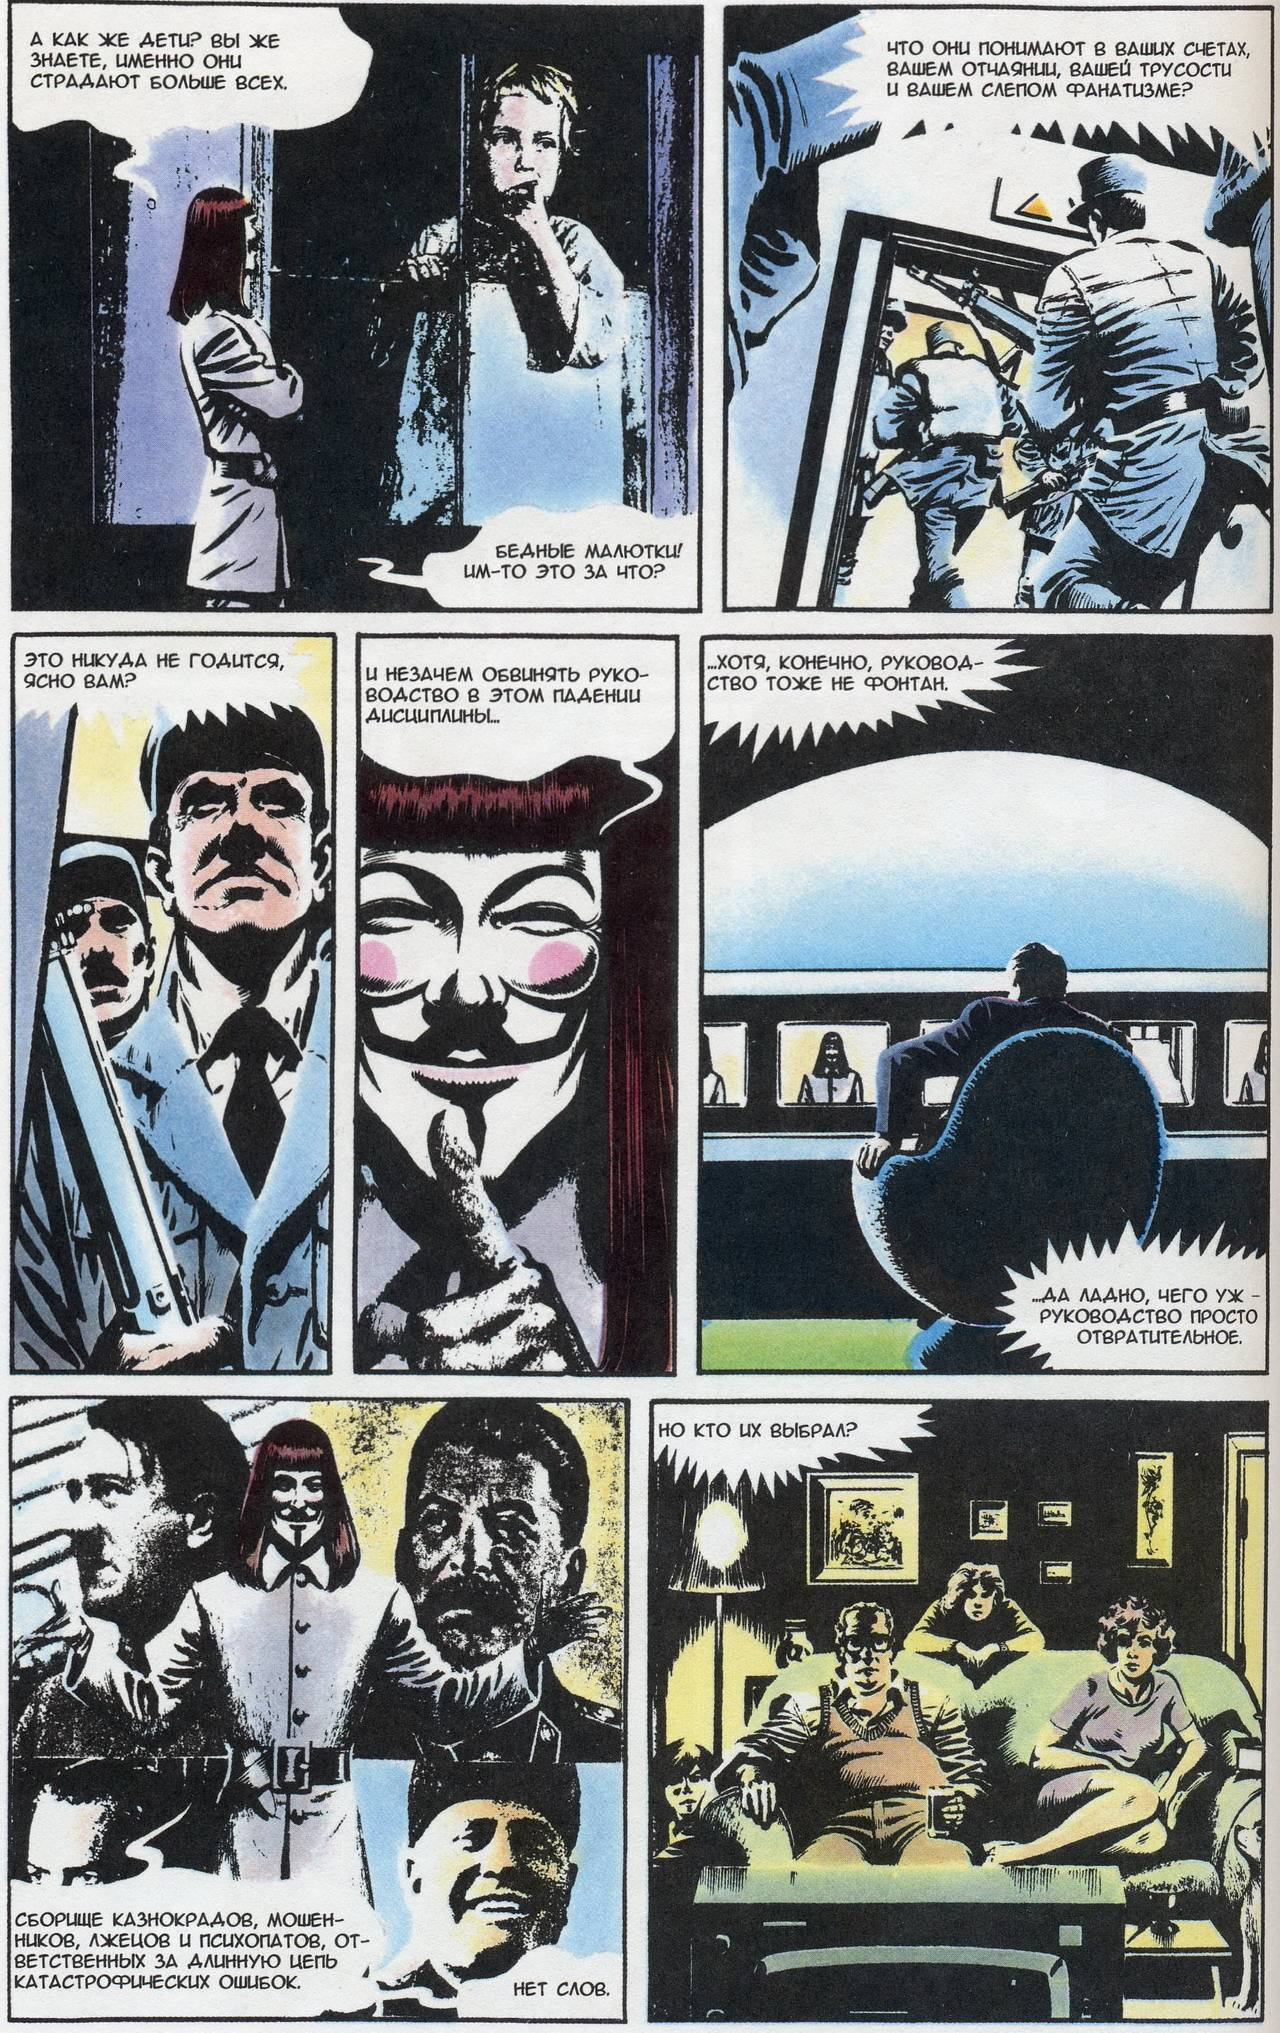 anonymity behind the mask in v for vendetta a comic book series by alan moore Alan moore and david lloyd's v for vendetta is often discussed without regard for its original serialization in british independent comic warrior in the early 1980s this paper demonstrates how the strip was shaped by the political context of early thatcherism, contemporary debates on the left and within the anarchist movement, and moore's.